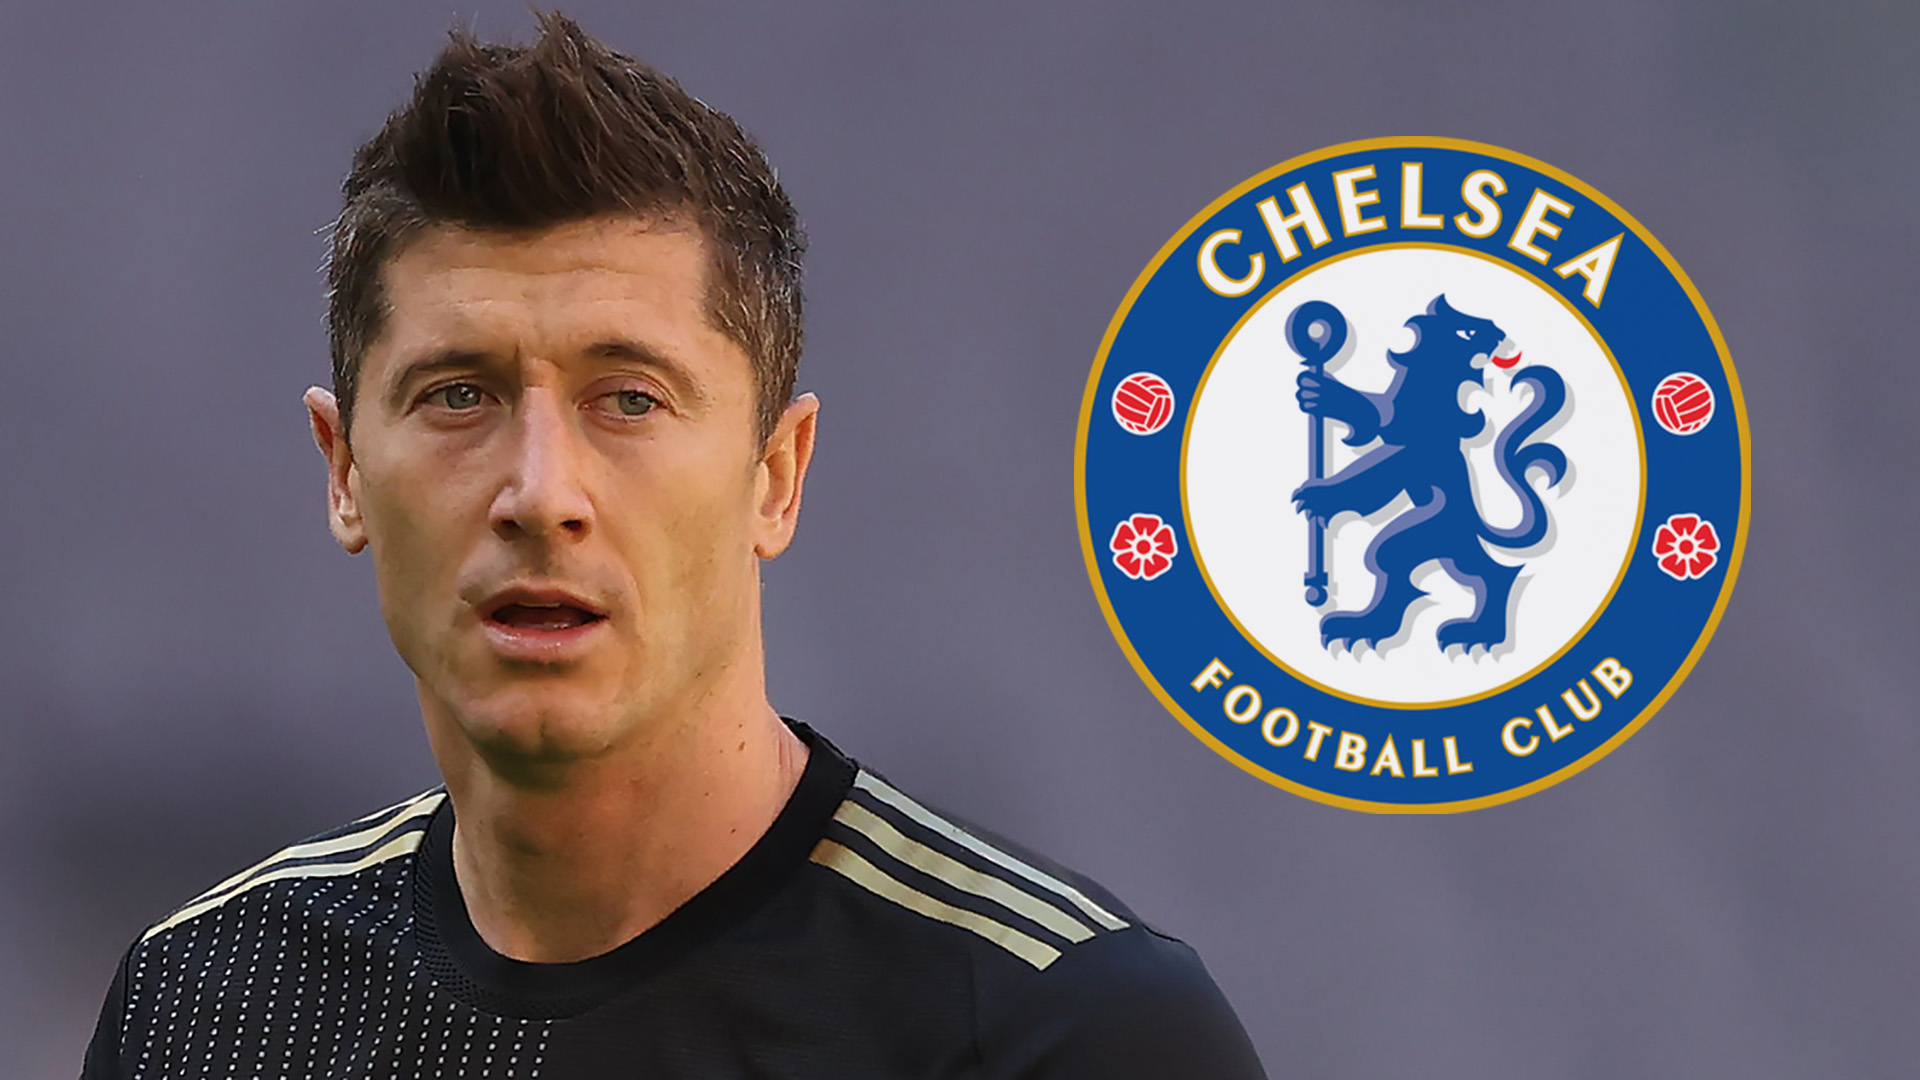 'Lewandowski will be here for another two years' - Chelsea-linked striker not for sale, insists Bayern president Hainer